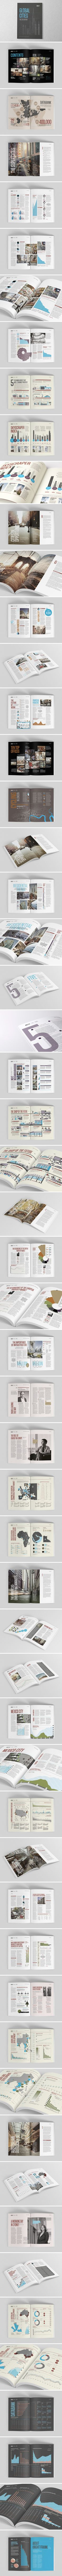 \\\ Knight Frank - Global Cities Report by The Design Surgery \\\ Editorial design magazine / revista / infografia / infographic. Booklet Design, Book Design Layout, Graphic Design Layouts, Print Layout, Graphic Design Inspiration, Editorial Design, Editorial Layout, Brochure Layout, Brochure Design